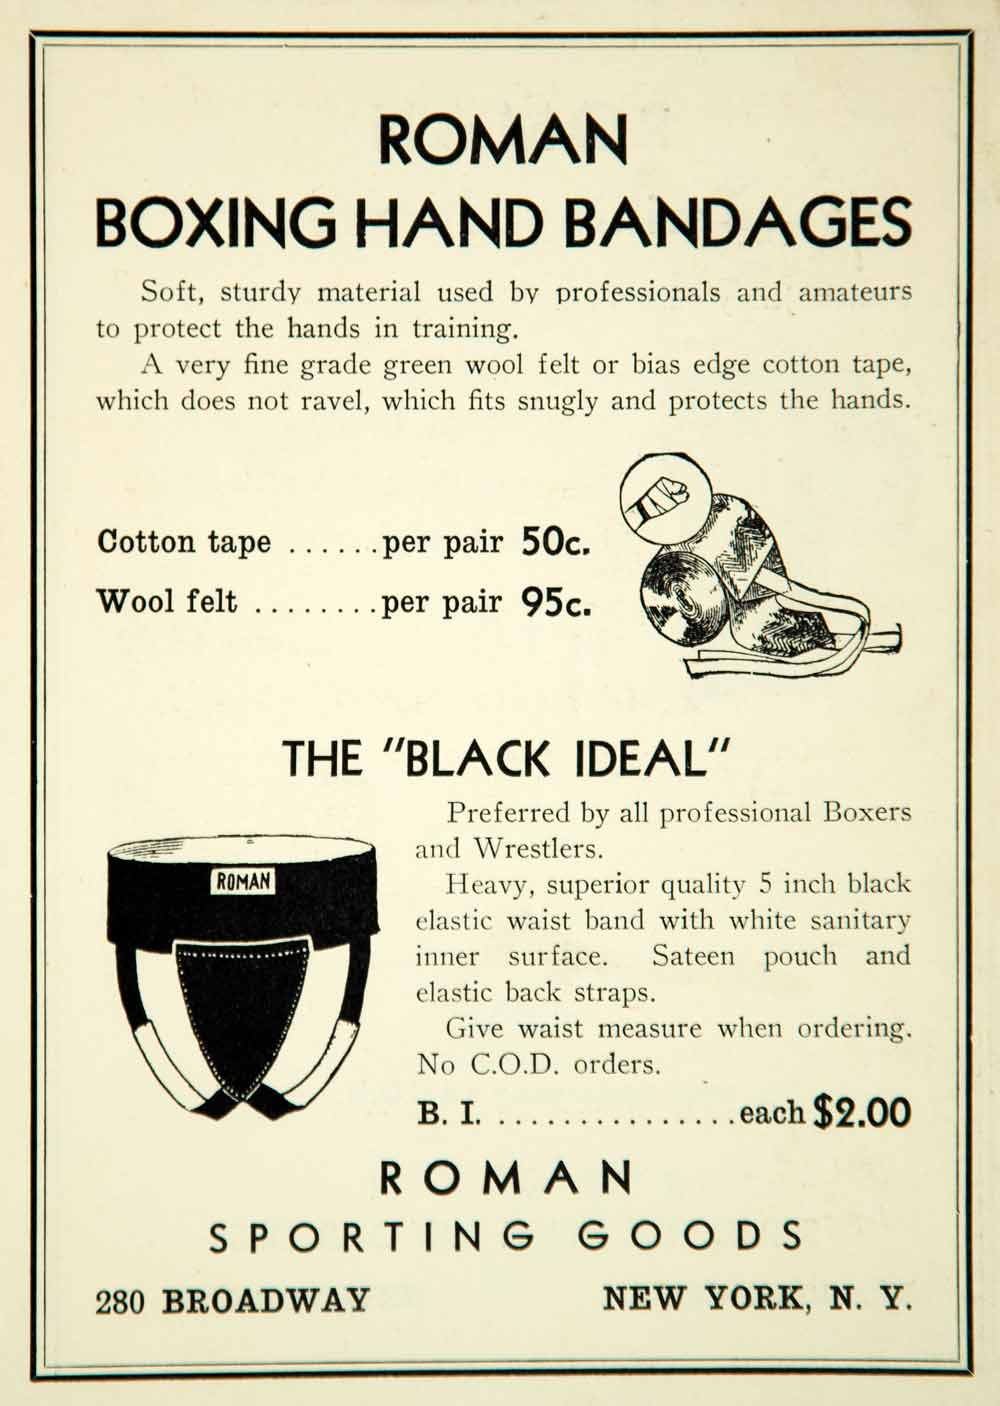 1936 Ad Roman Sporting Goods 280 Broadway NY Boxing Hand Bandages Black YPBR1